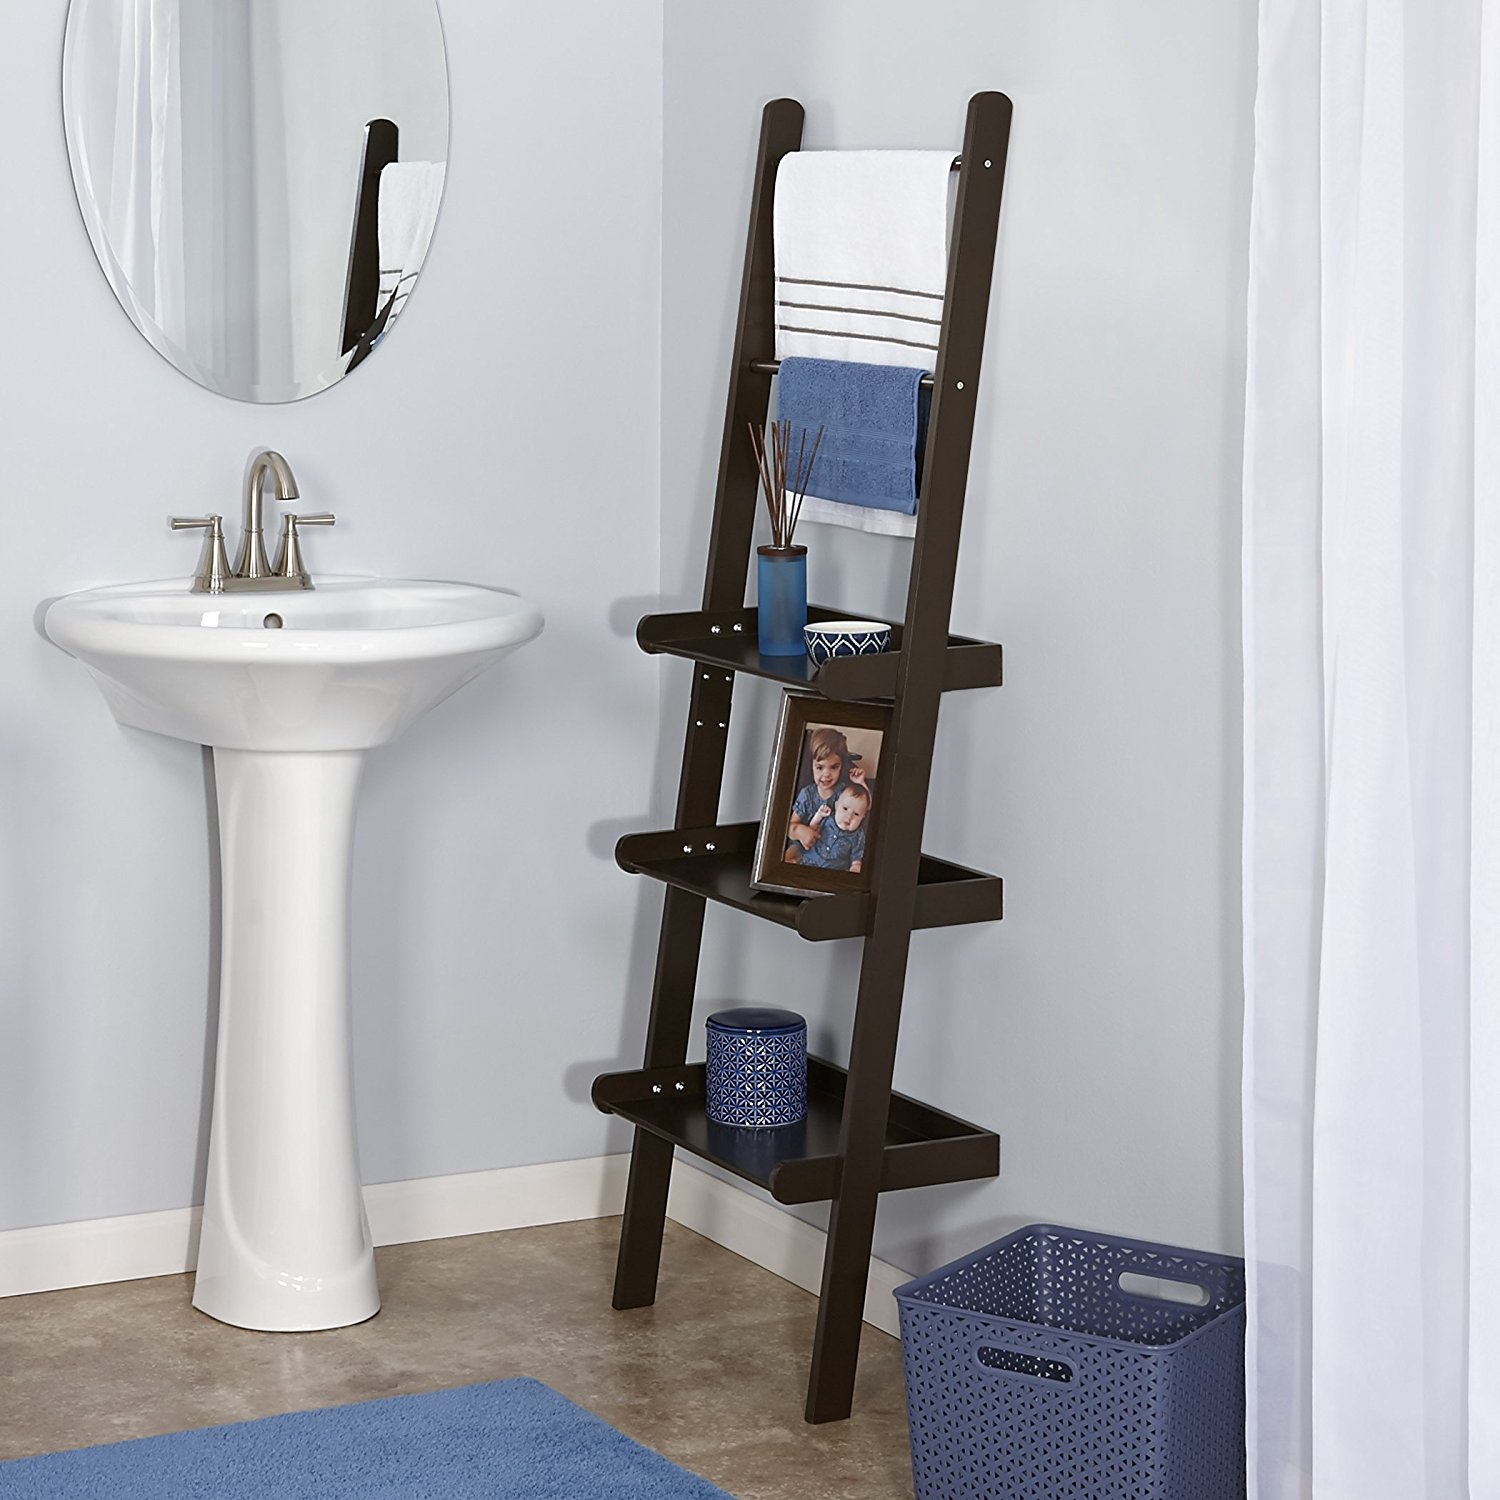 Terrific 11 Best Bathroom Ladder Shelves For Toilet Storage Reviews Beutiful Home Inspiration Truamahrainfo